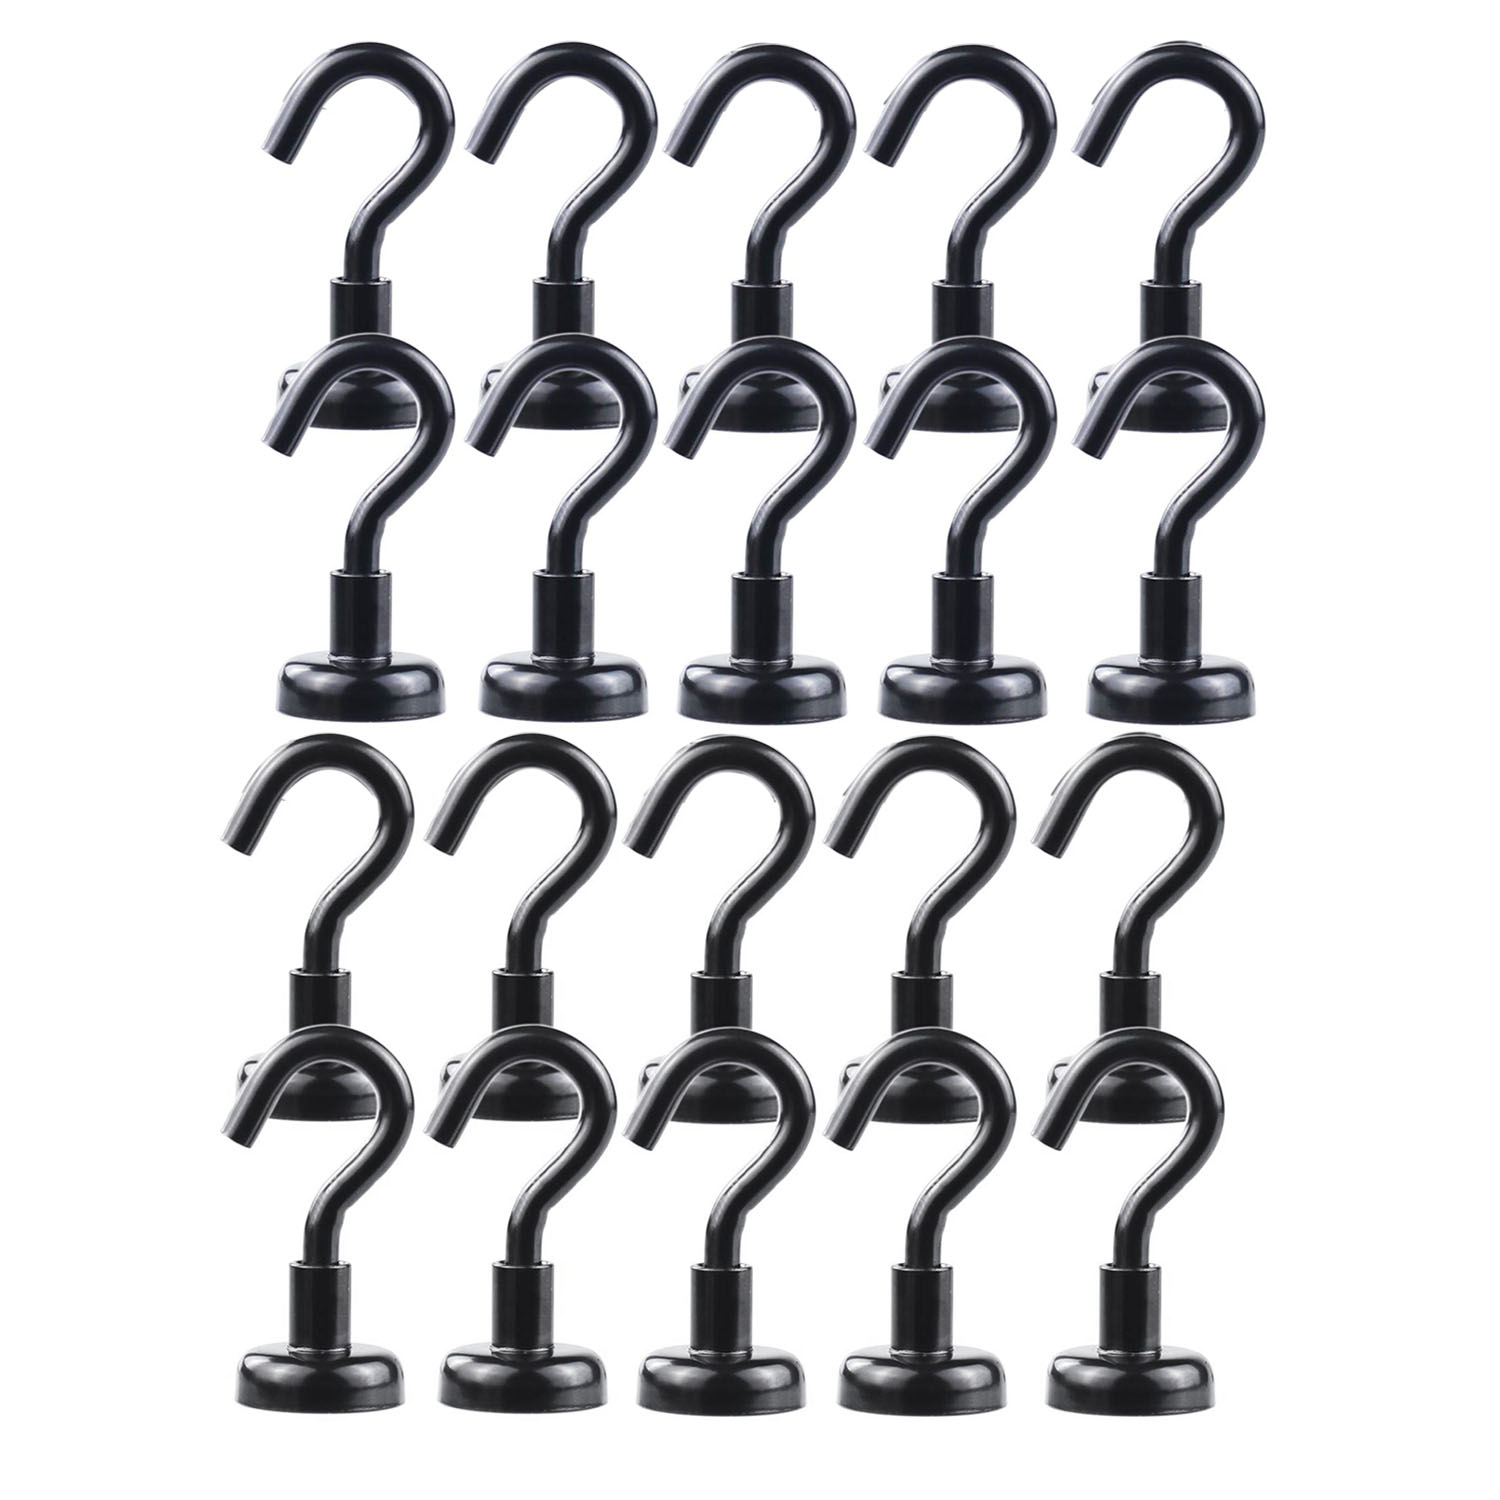 Heavy Duty Black Magnetic Hooks, Strong Neodymium Black Magnet Hook For Home, Kitchen, Workplace, Office And Garage, Hold Up T